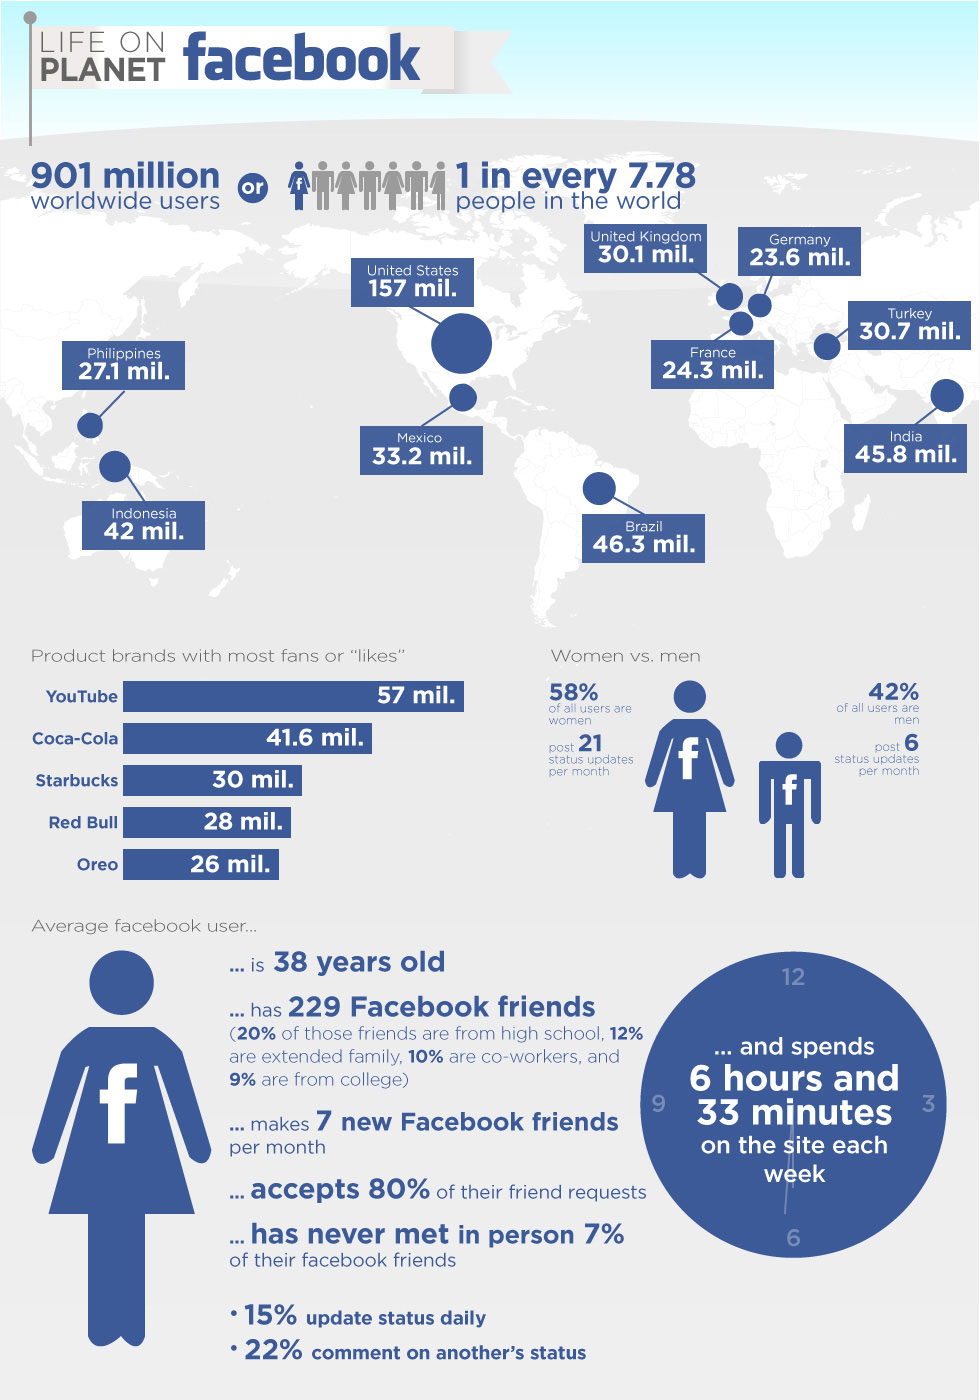 Users 58 of all facebook users are women while 42 of facebook